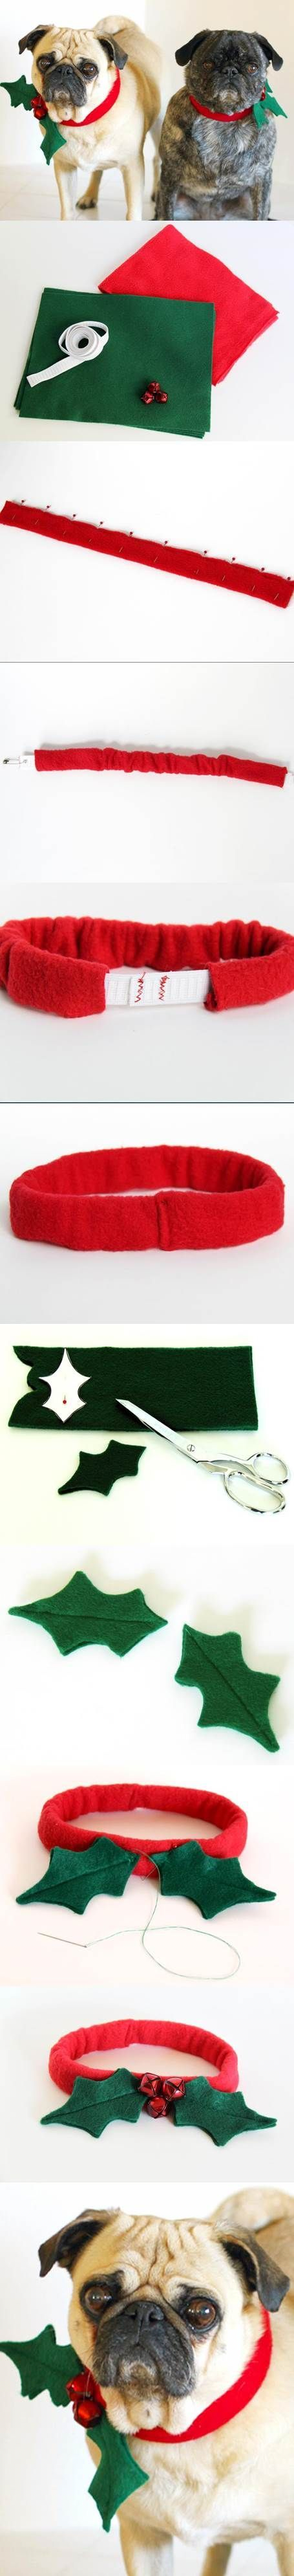 DIY Christmas Dog Collar 2